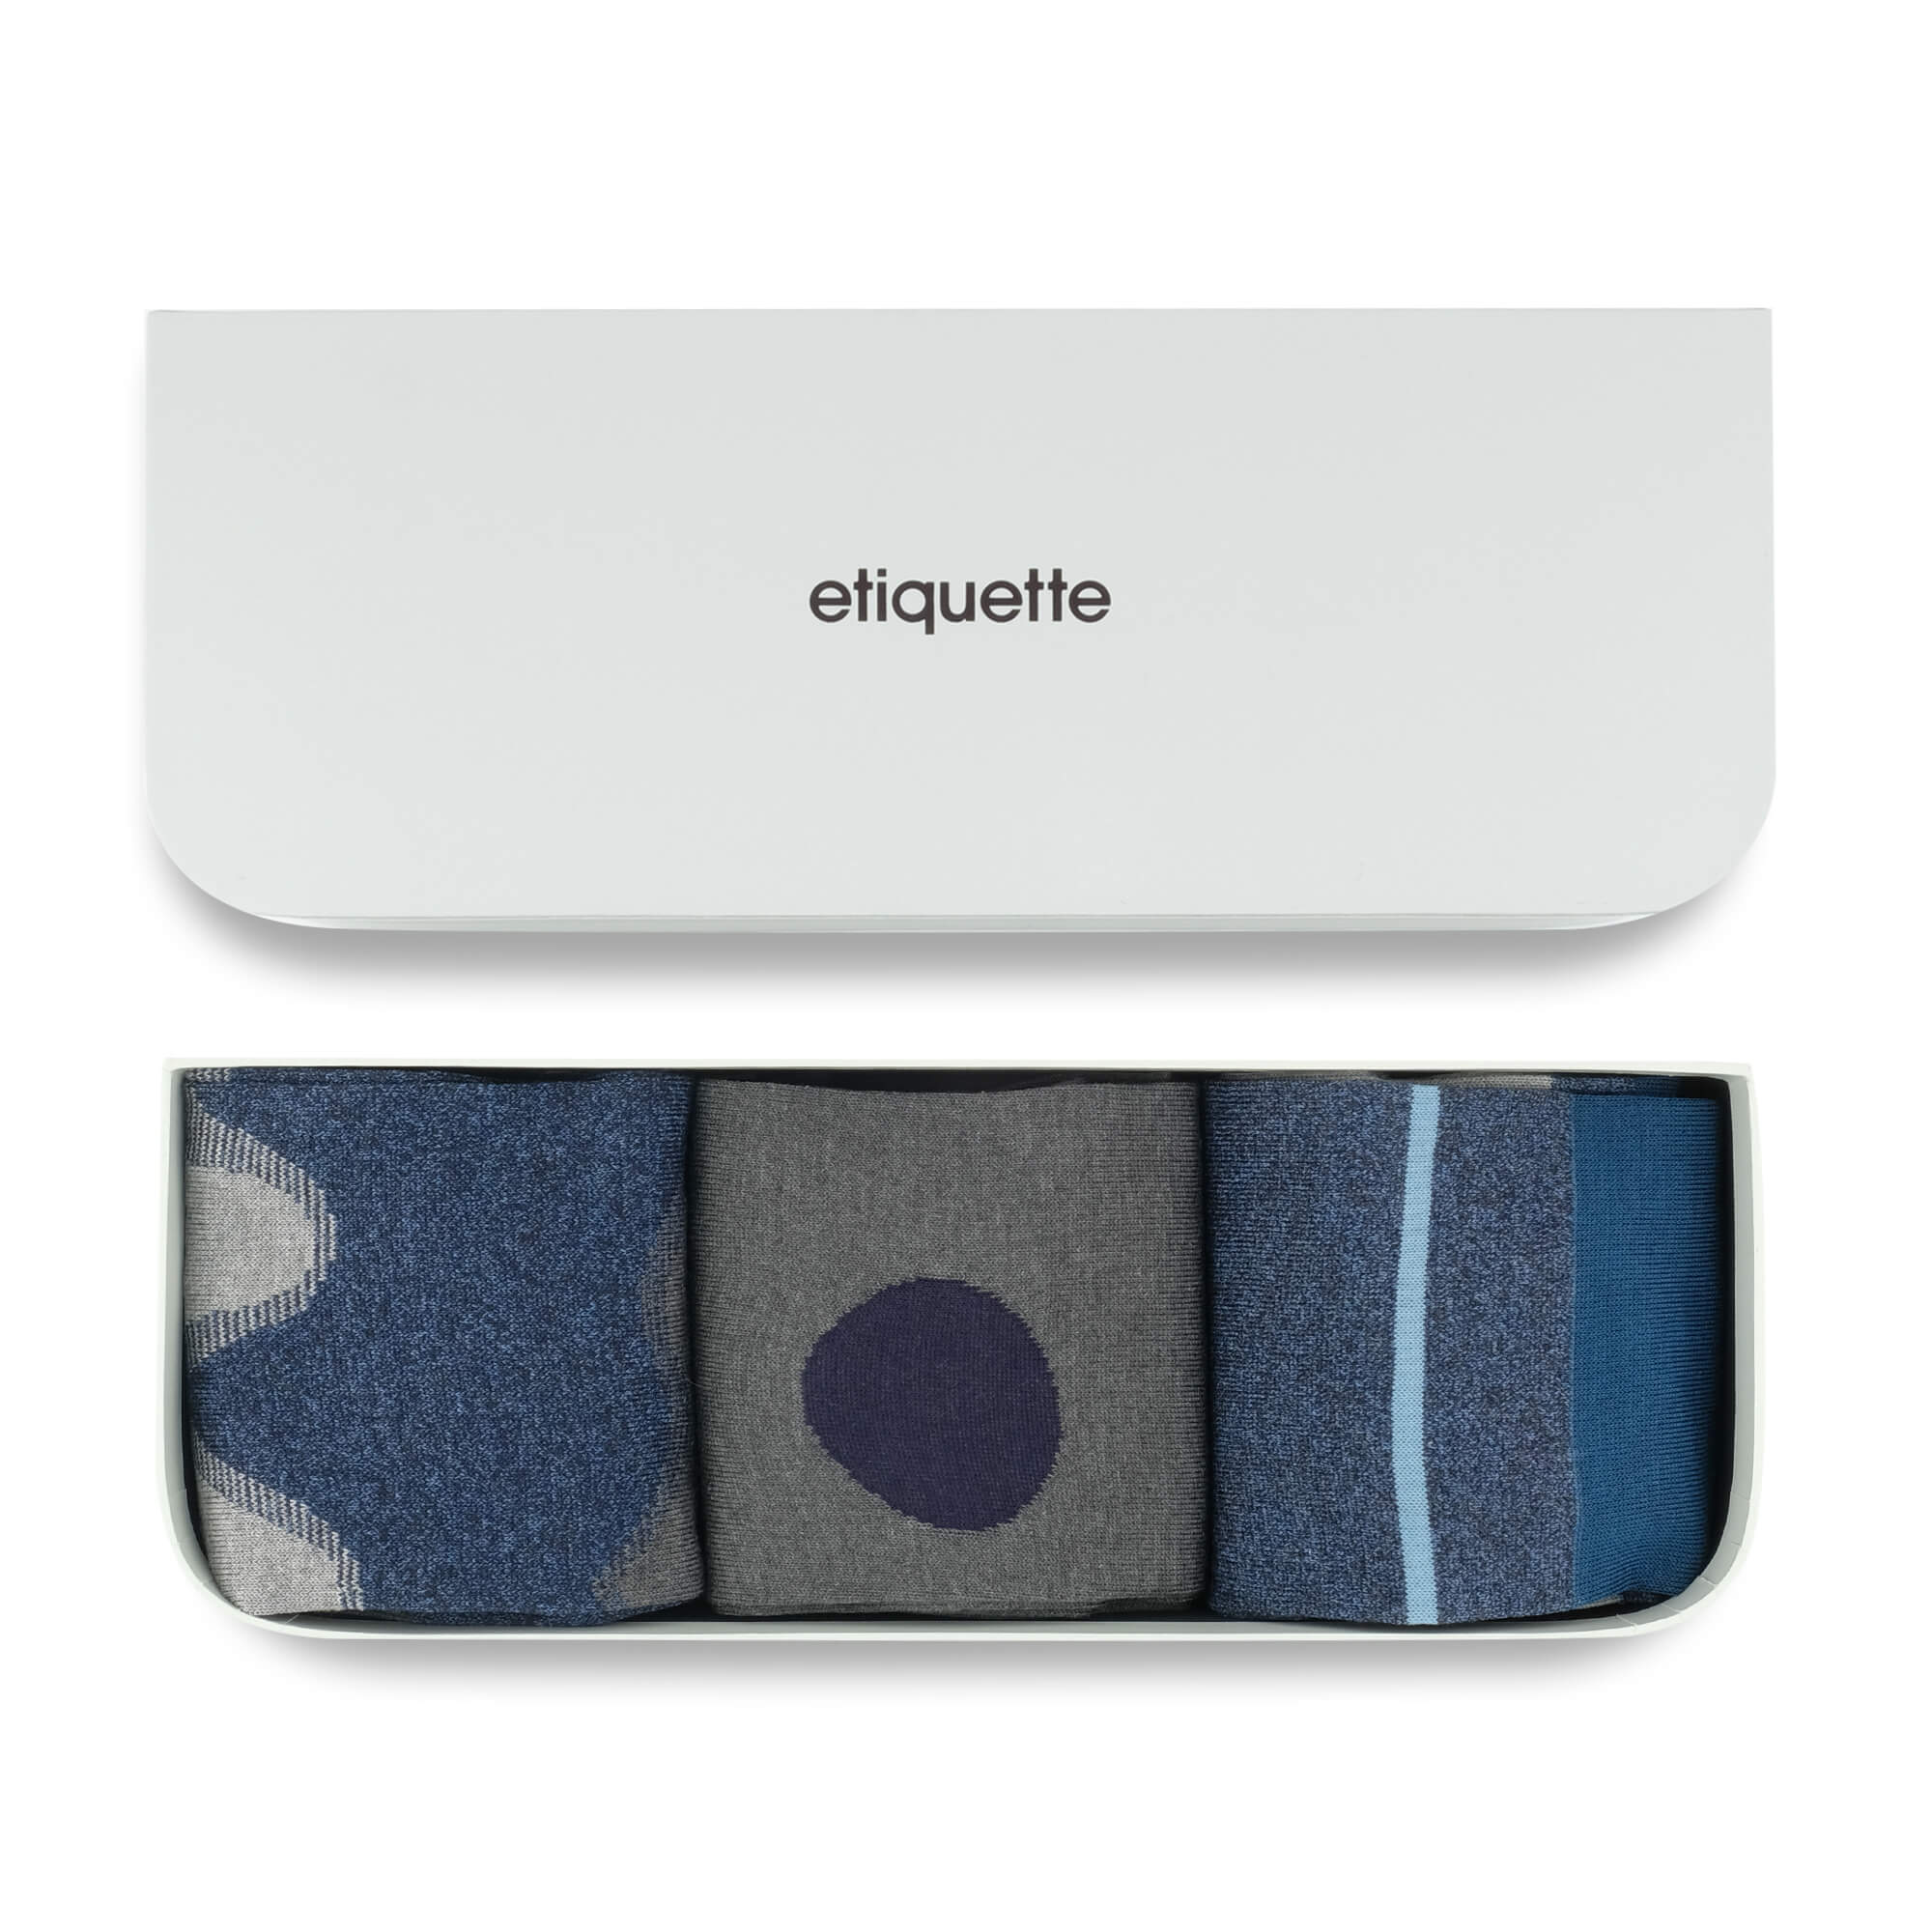 Mens Socks - Shades of Indigo Men's Socks Gift Box - Blue⎪Etiquette Clothiers